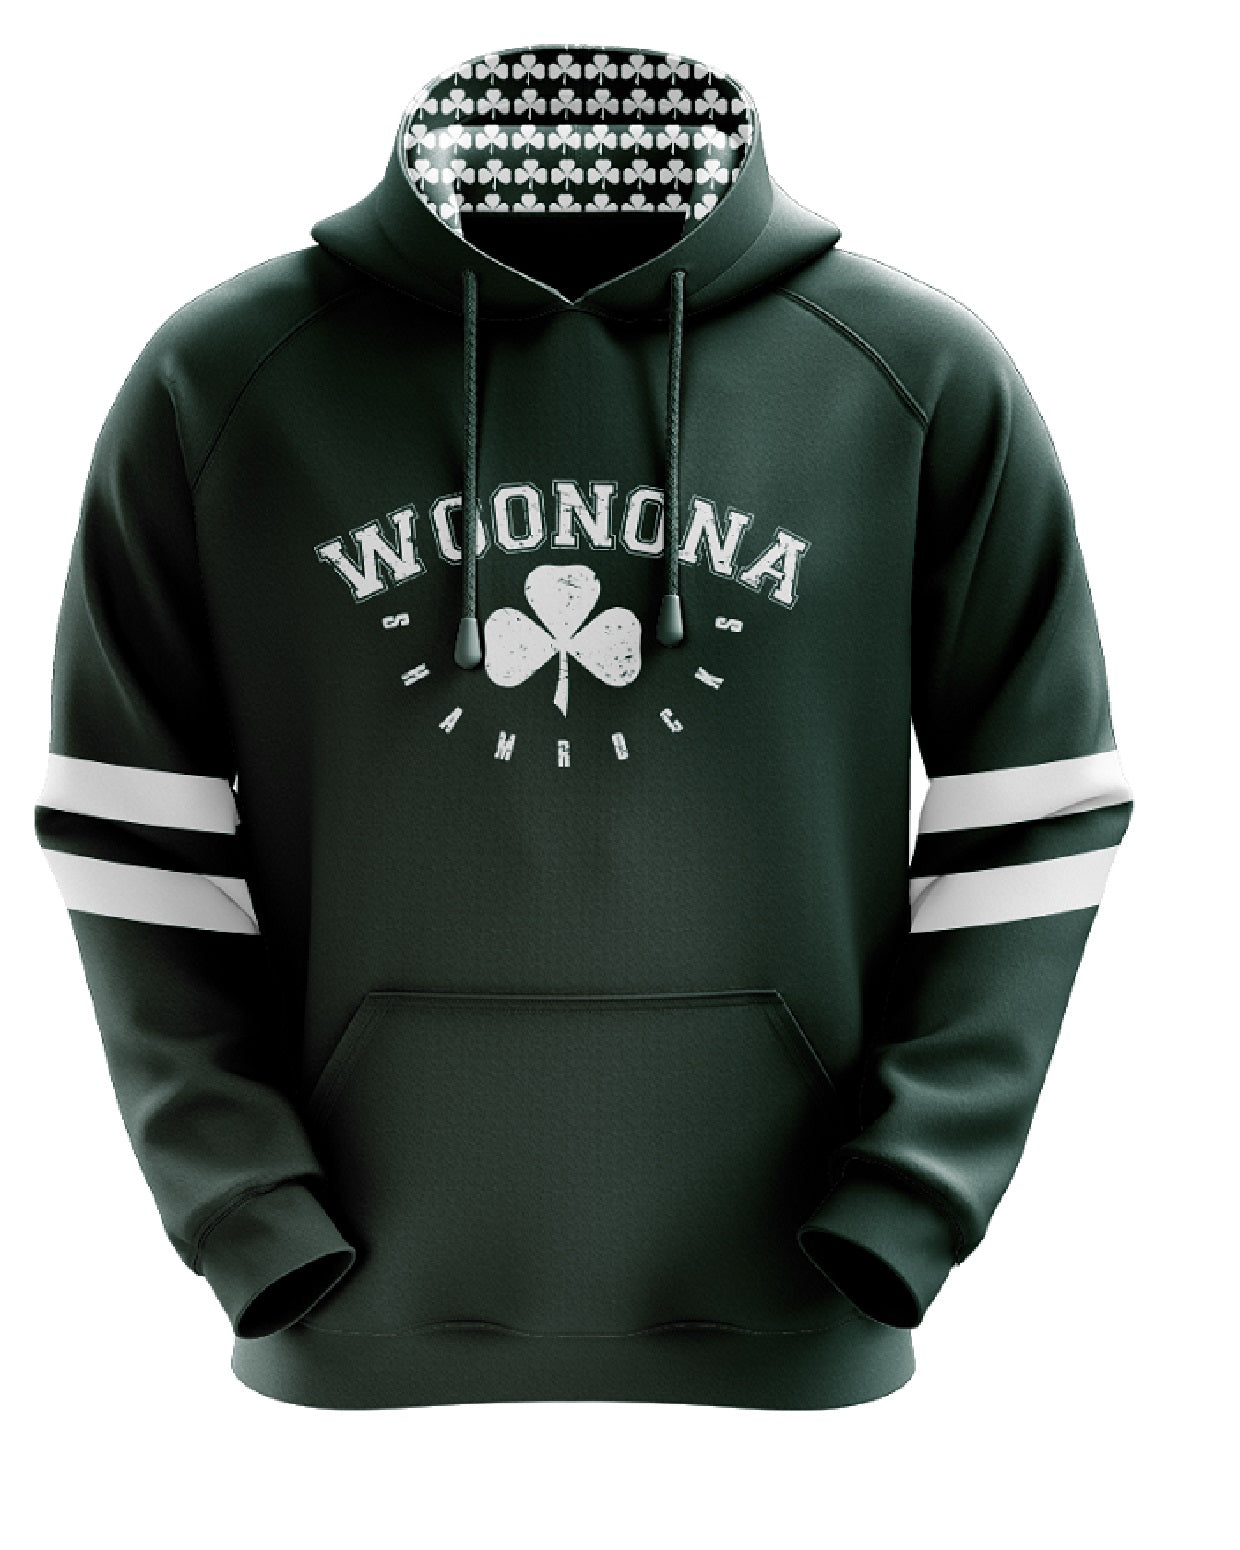 Woonona Shamrocks Hoody FEMALE